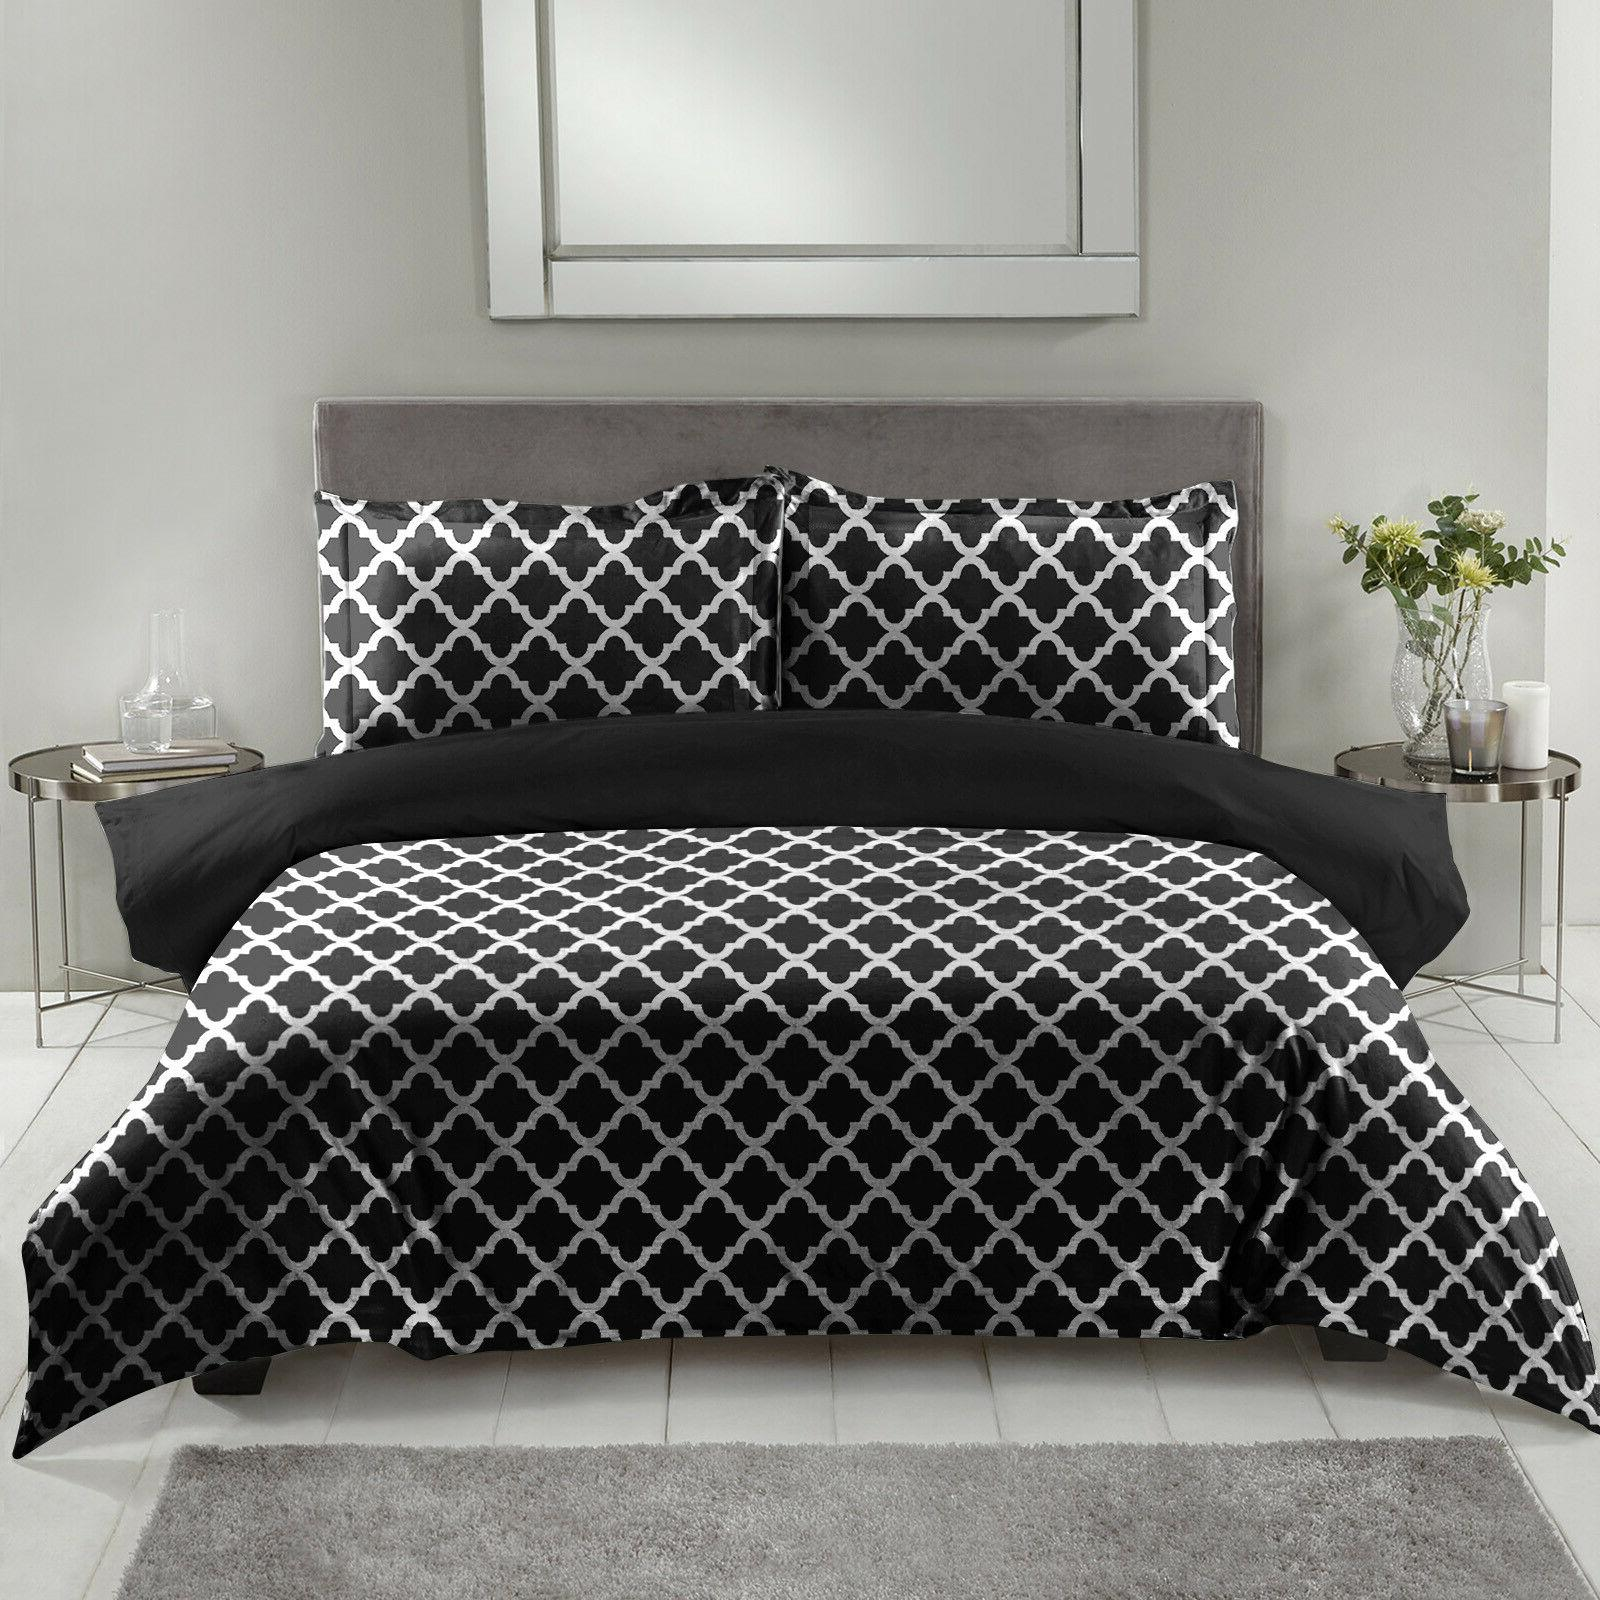 Set 3 Piece Microfiber Bedding Pillow